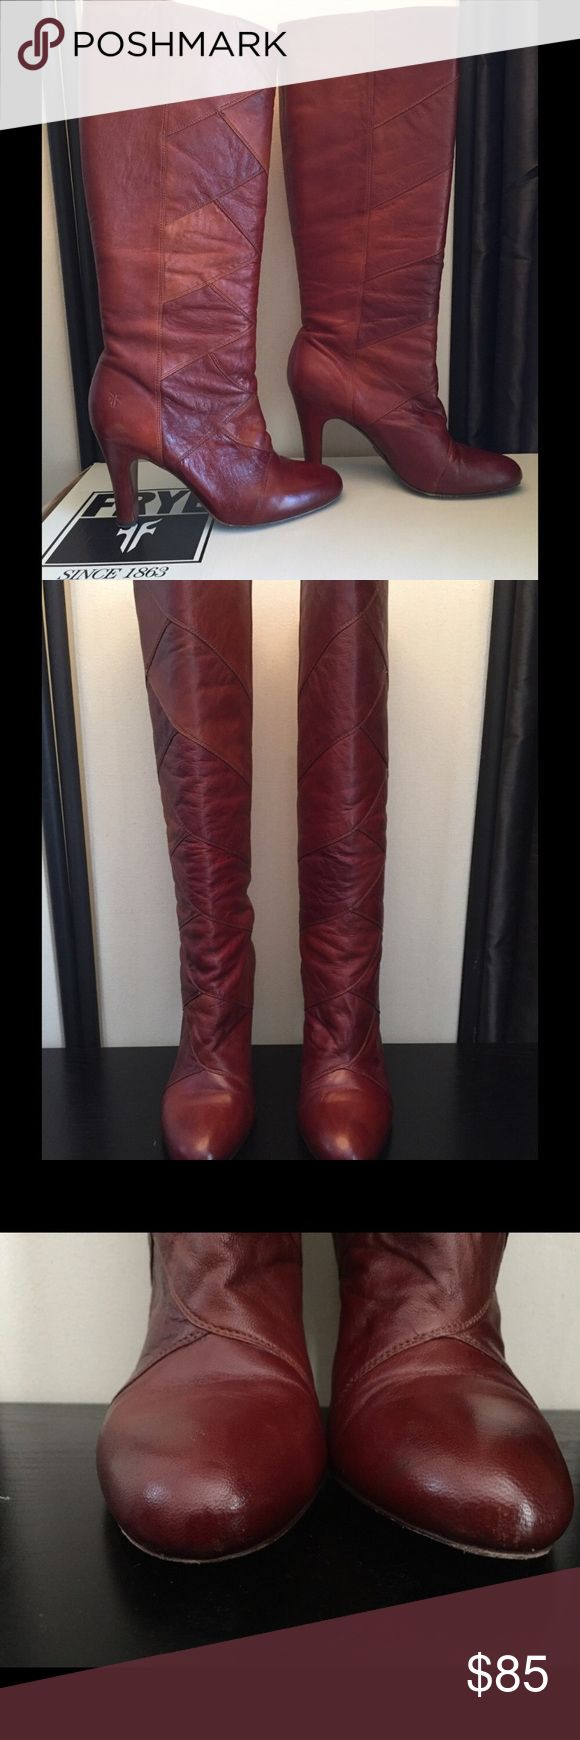 """FRYE boots Ava tall heel patch leather in cognac Ava tall leather patch FRYE boot with 3 1/2 inch heel. Shaft measures approximately 15"""". Small marks on heels from wear, refer to picture, very small.  Original box included. Frye Shoes Heeled Boots"""